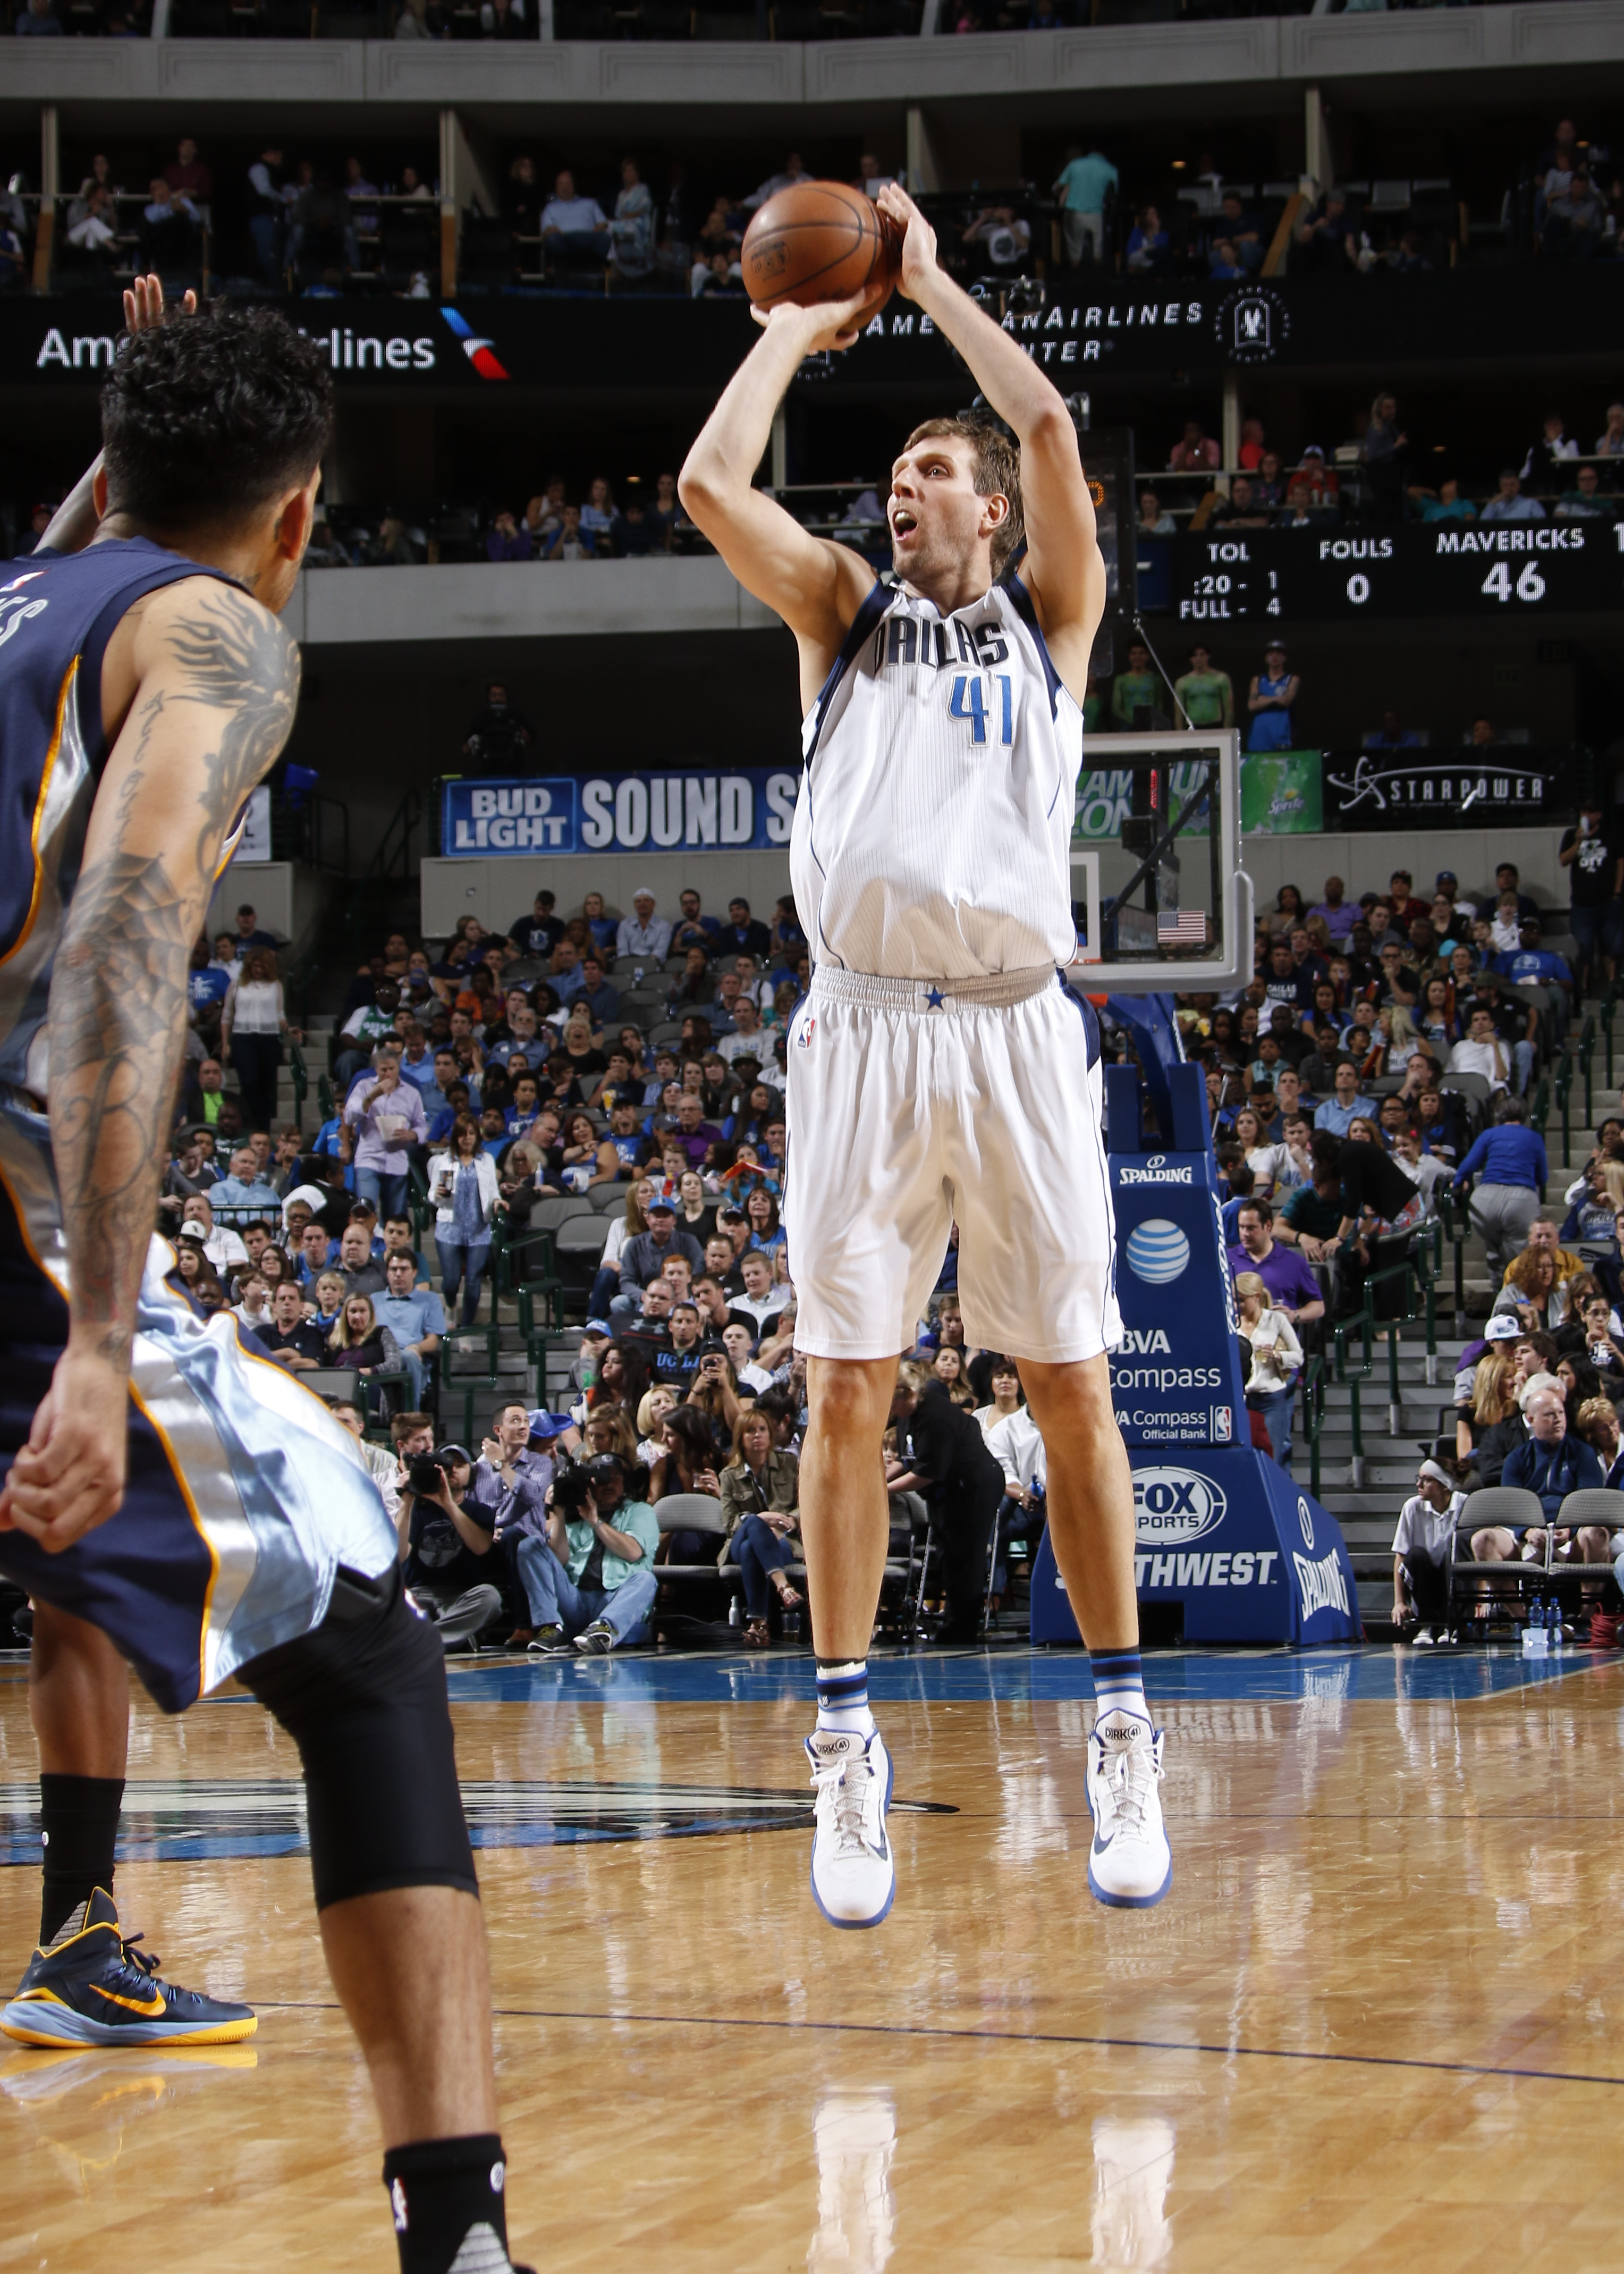 DALLAS, TX - APRIL 8: Dirk Nowitzki #41 of the Dallas Mavericks shoots a jumper against the Memphis Grizzlies on April 8, 2016 at the American Airlines Center in Dallas, Texas. (Photo by Danny Bollinger/NBAE via Getty Images)